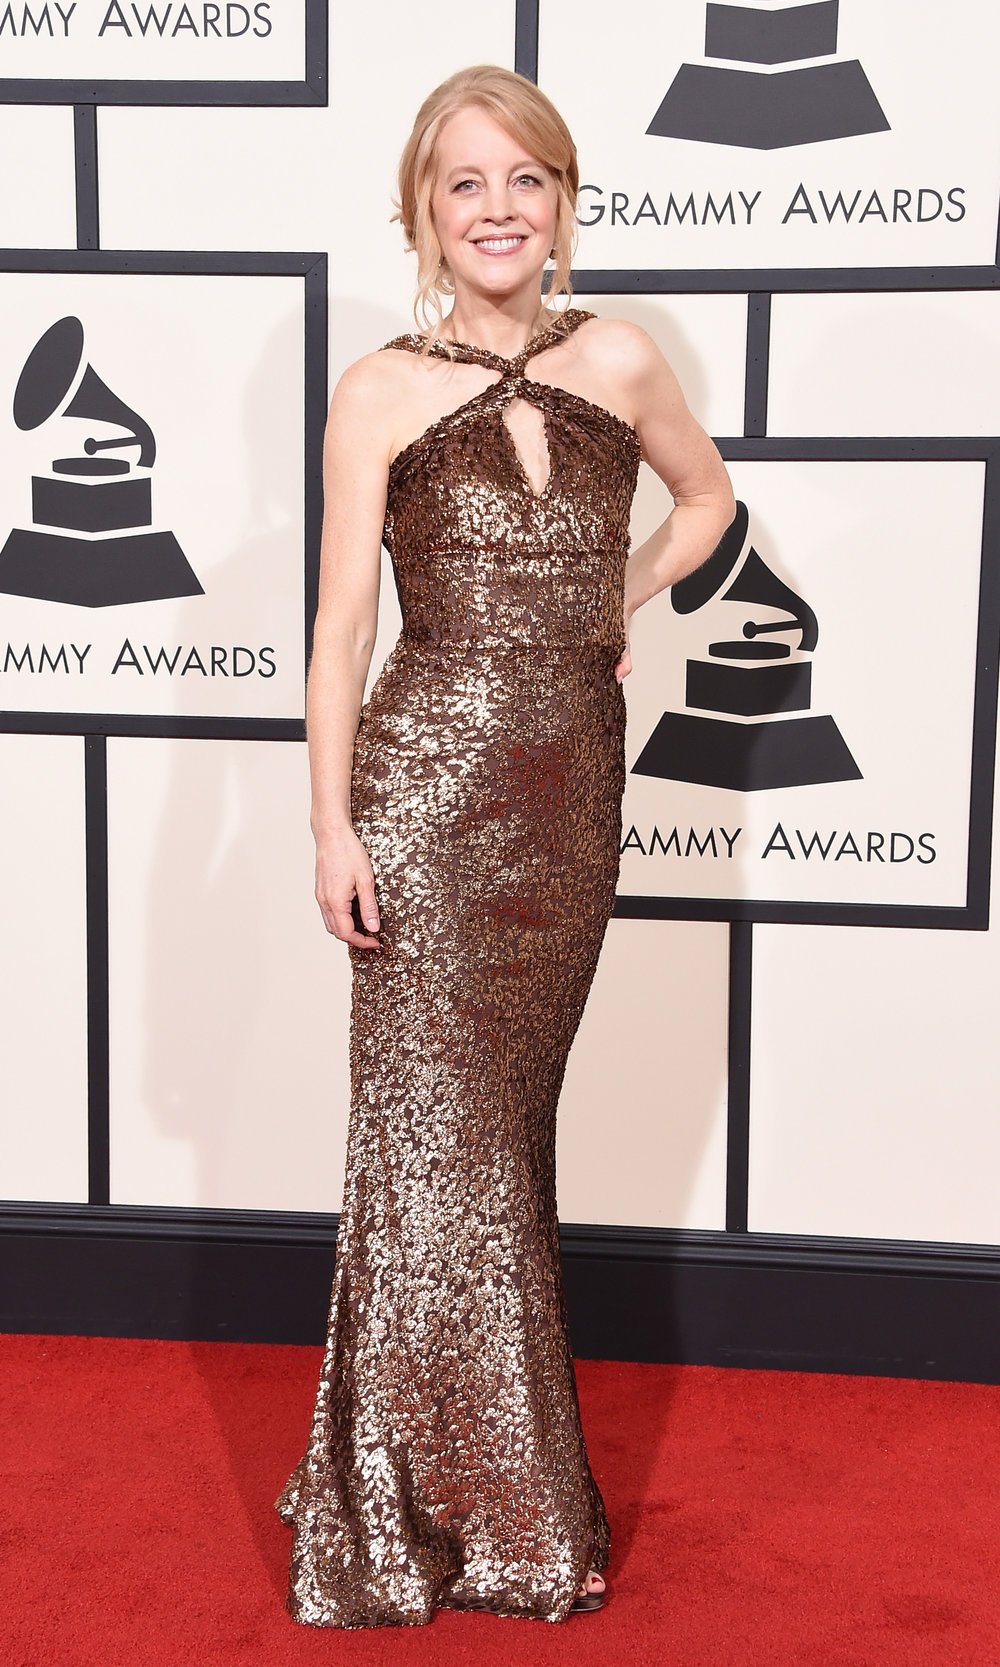 Maria Schneider arrives in sophie theallet at the 58th Annual GRAMMY Awards7 copy.jpg